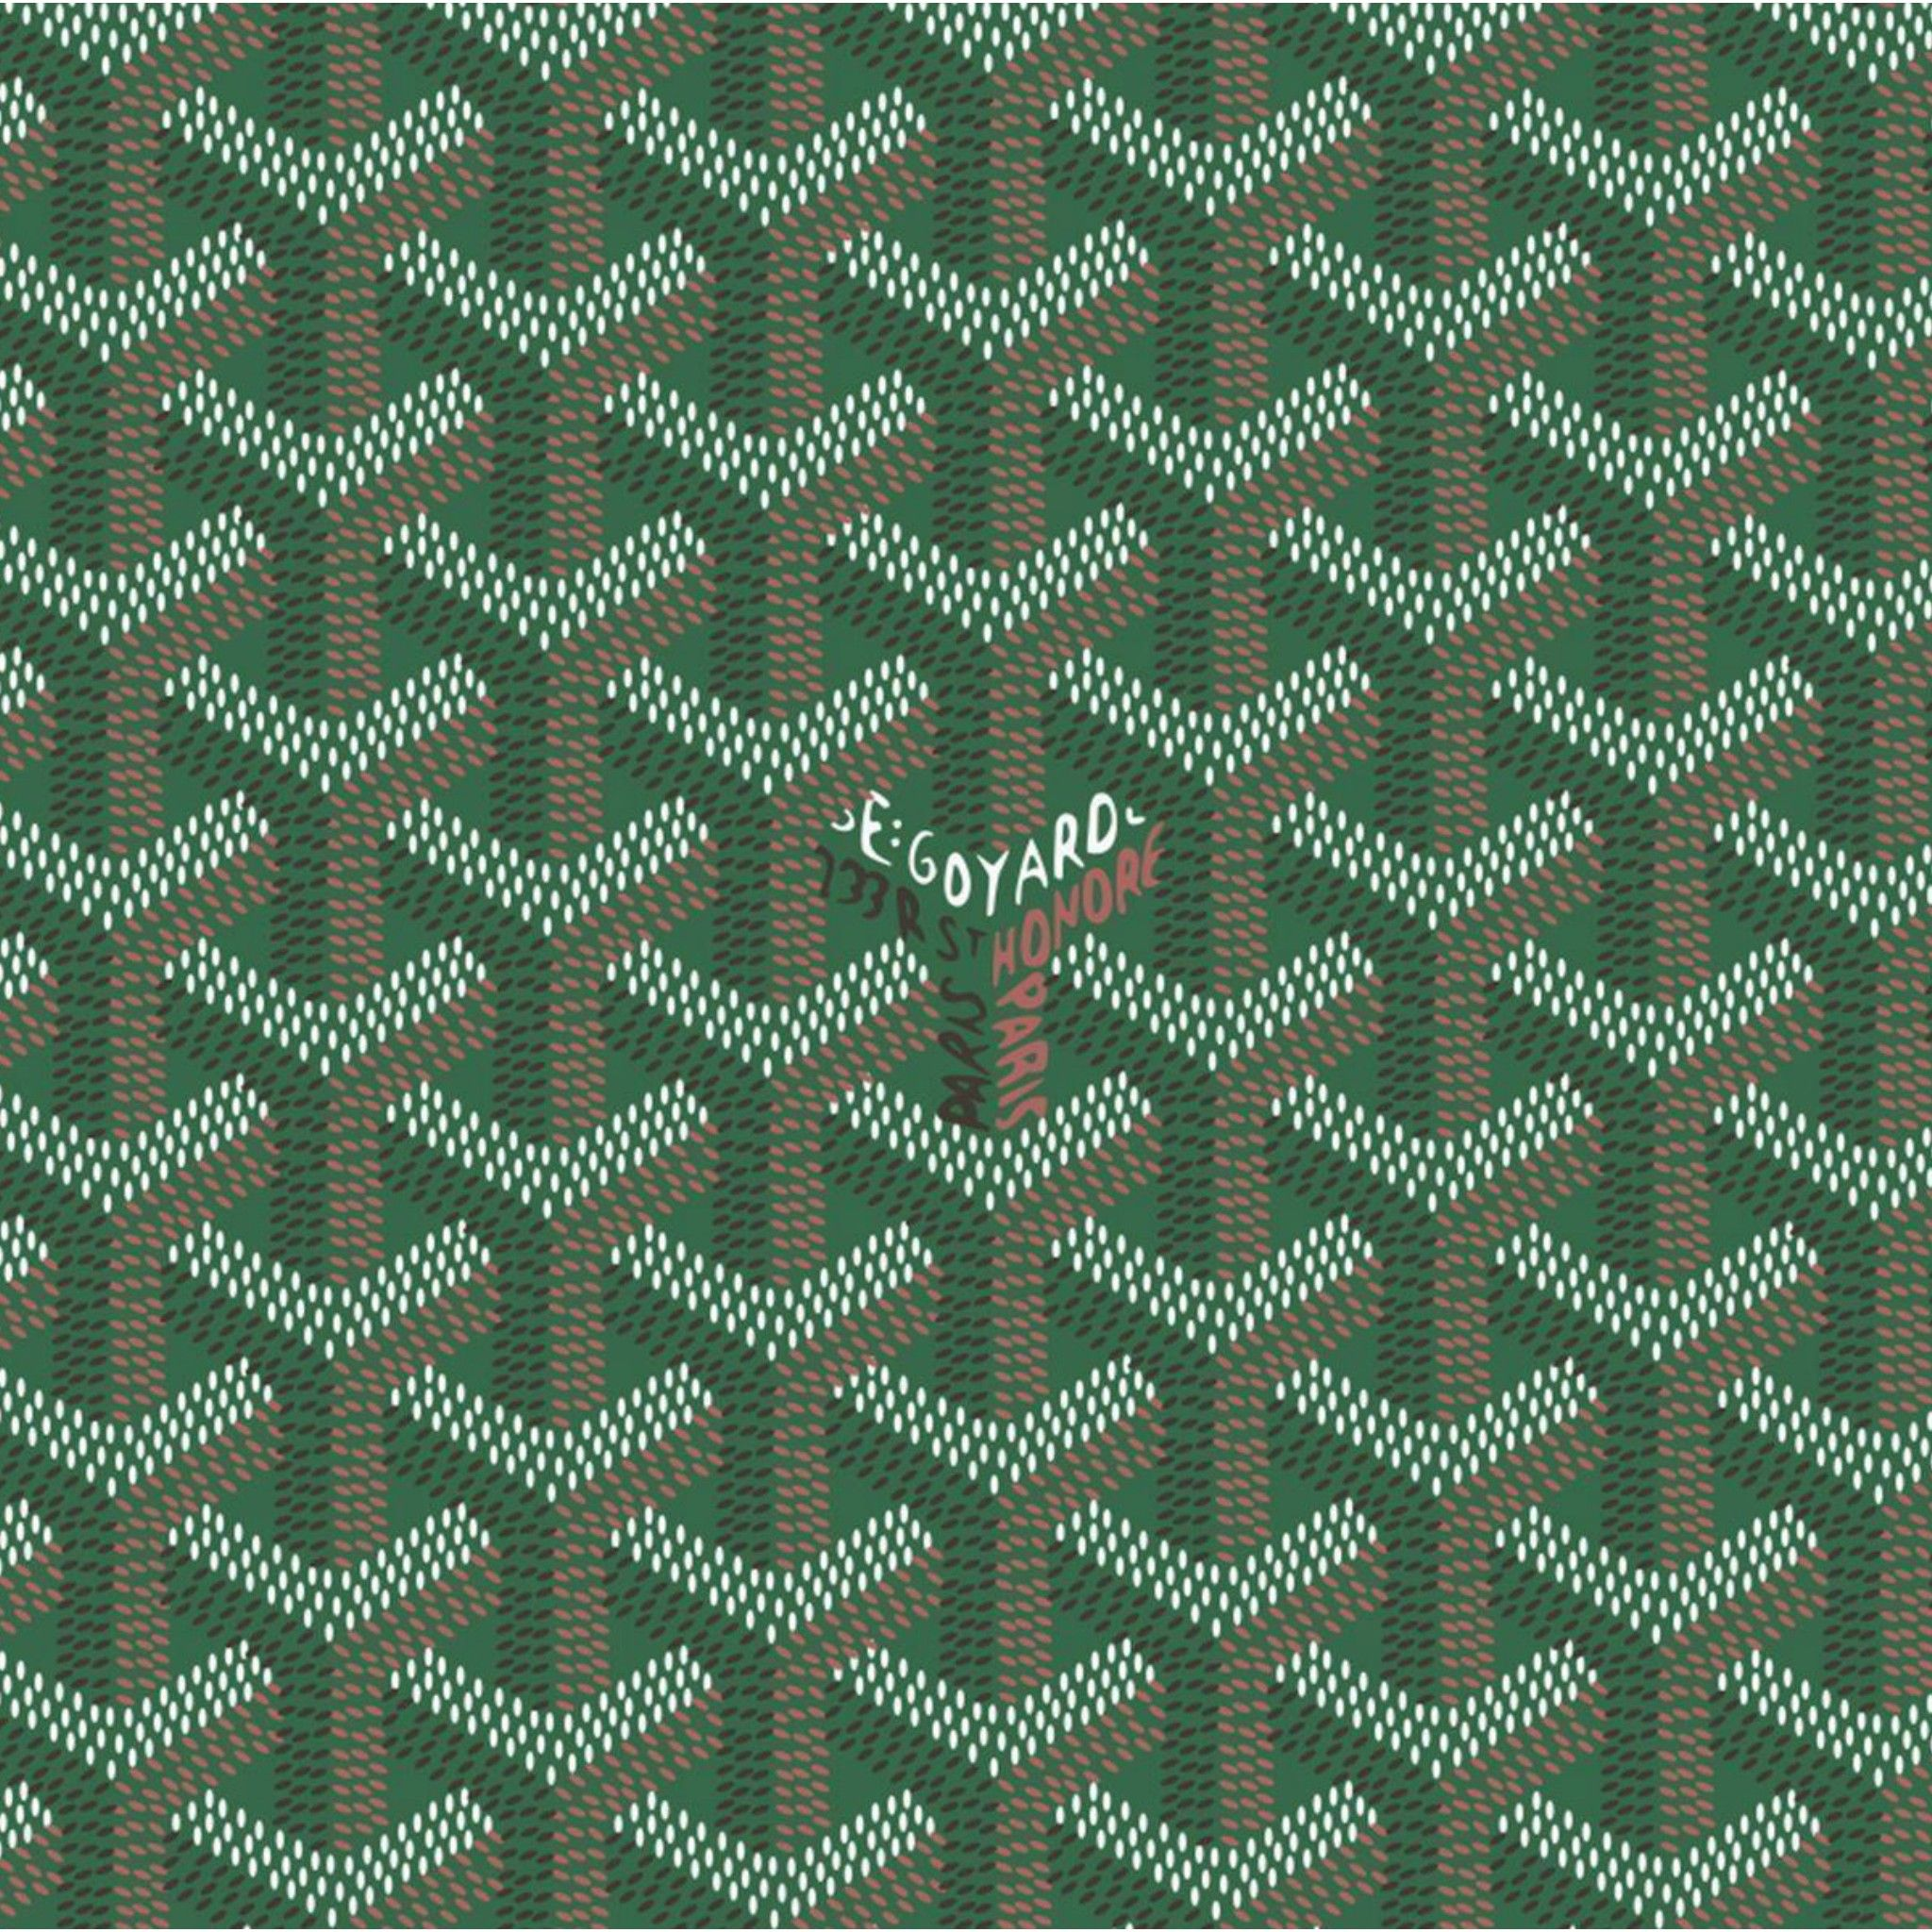 Green Goyard Pattern 2048 X 2048 Wallpapers Available For